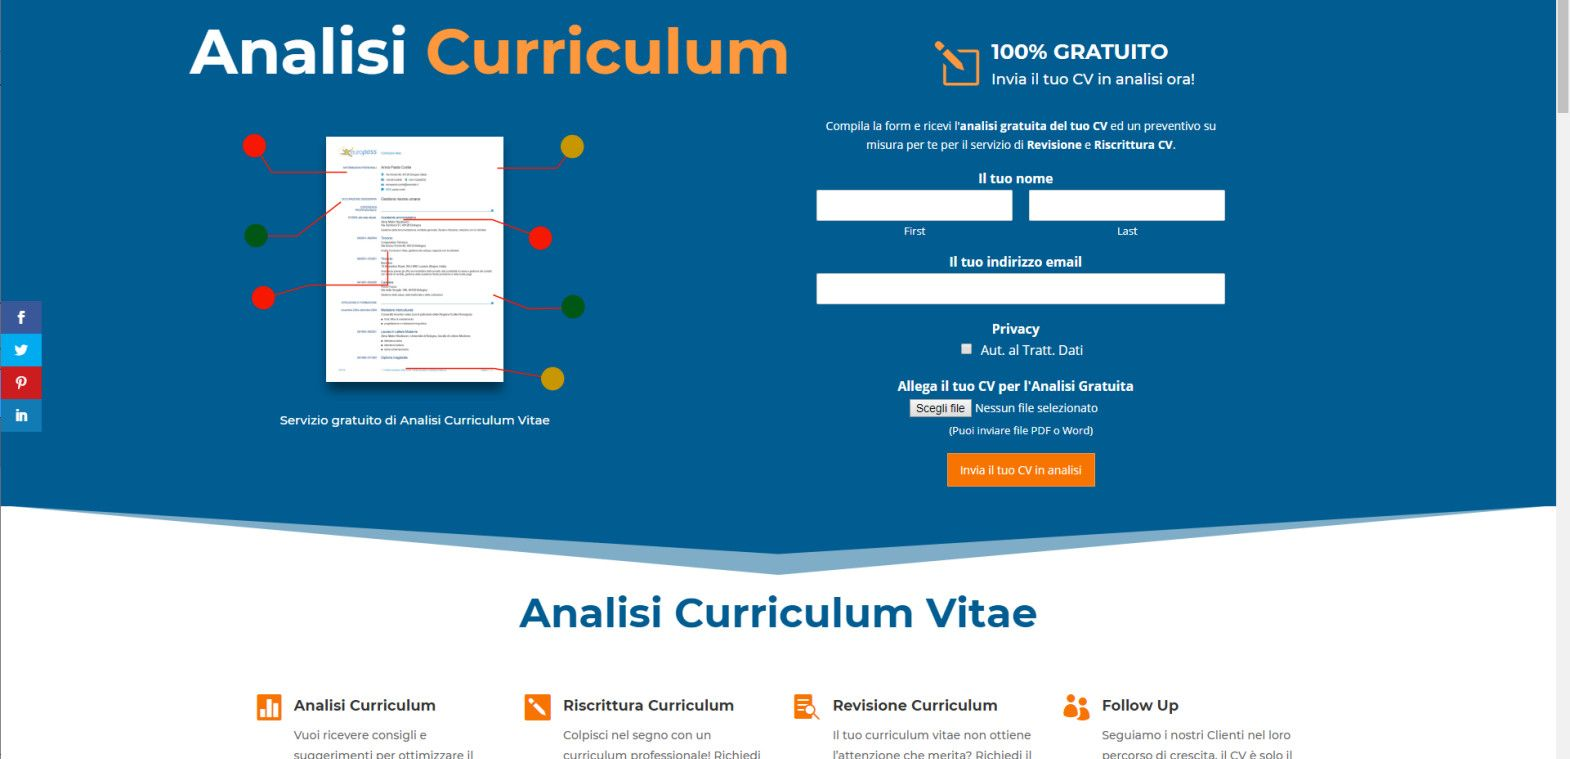 Analisi Curriculum